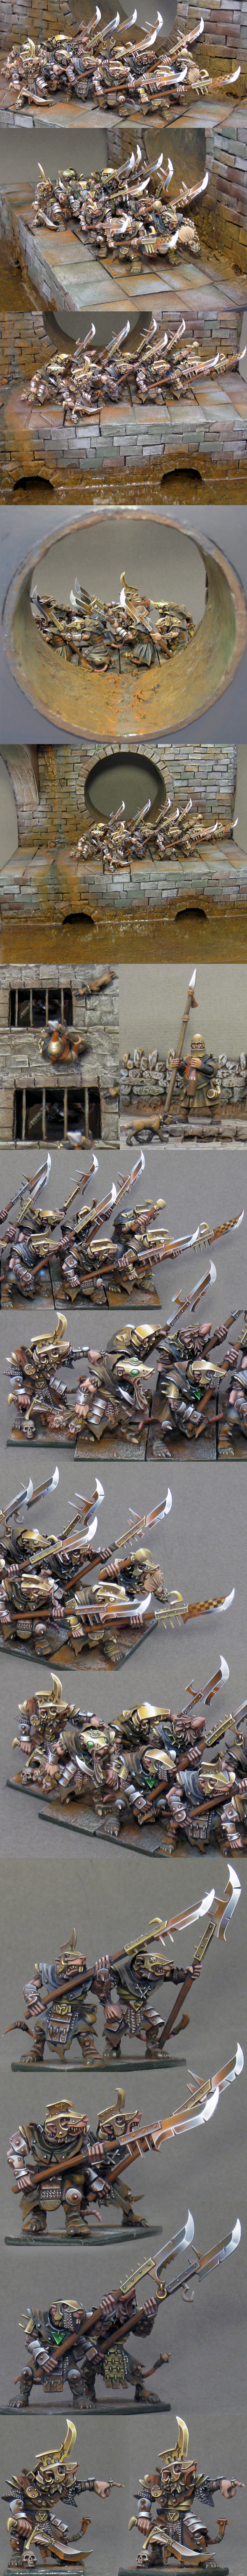 This is just my imagination... (skaven stormvermin)